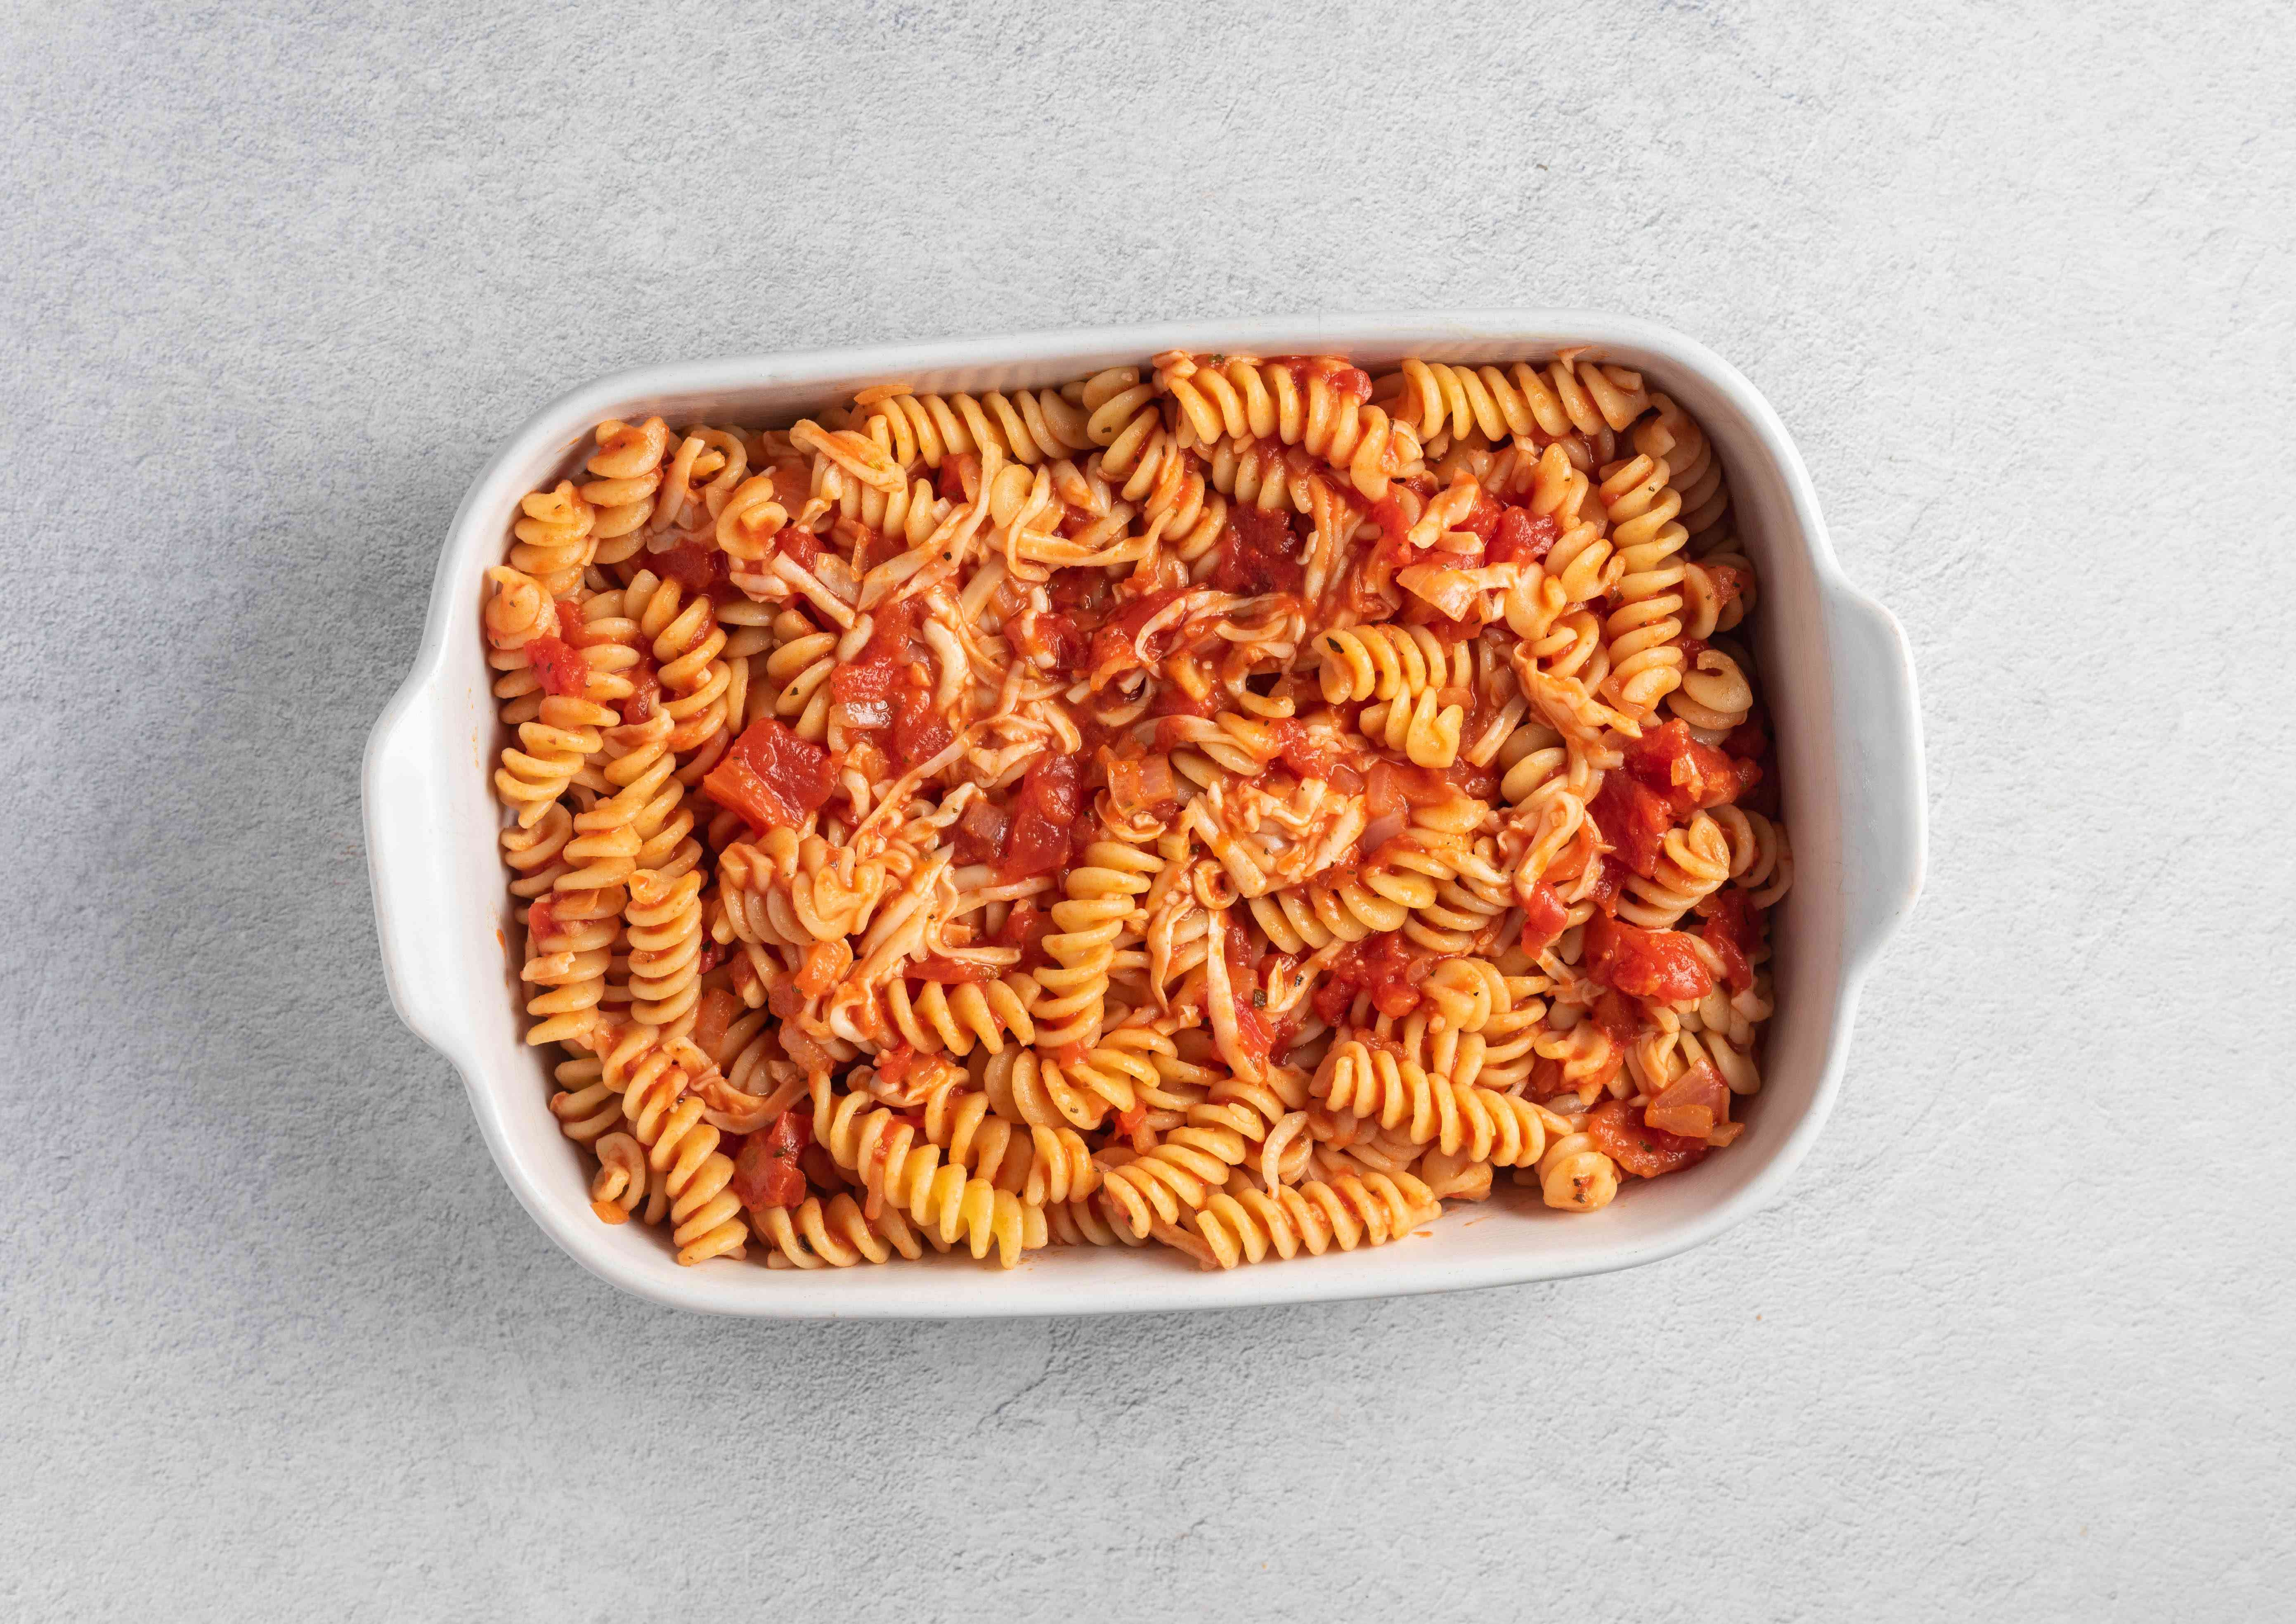 Stir the hot, cooked rotini